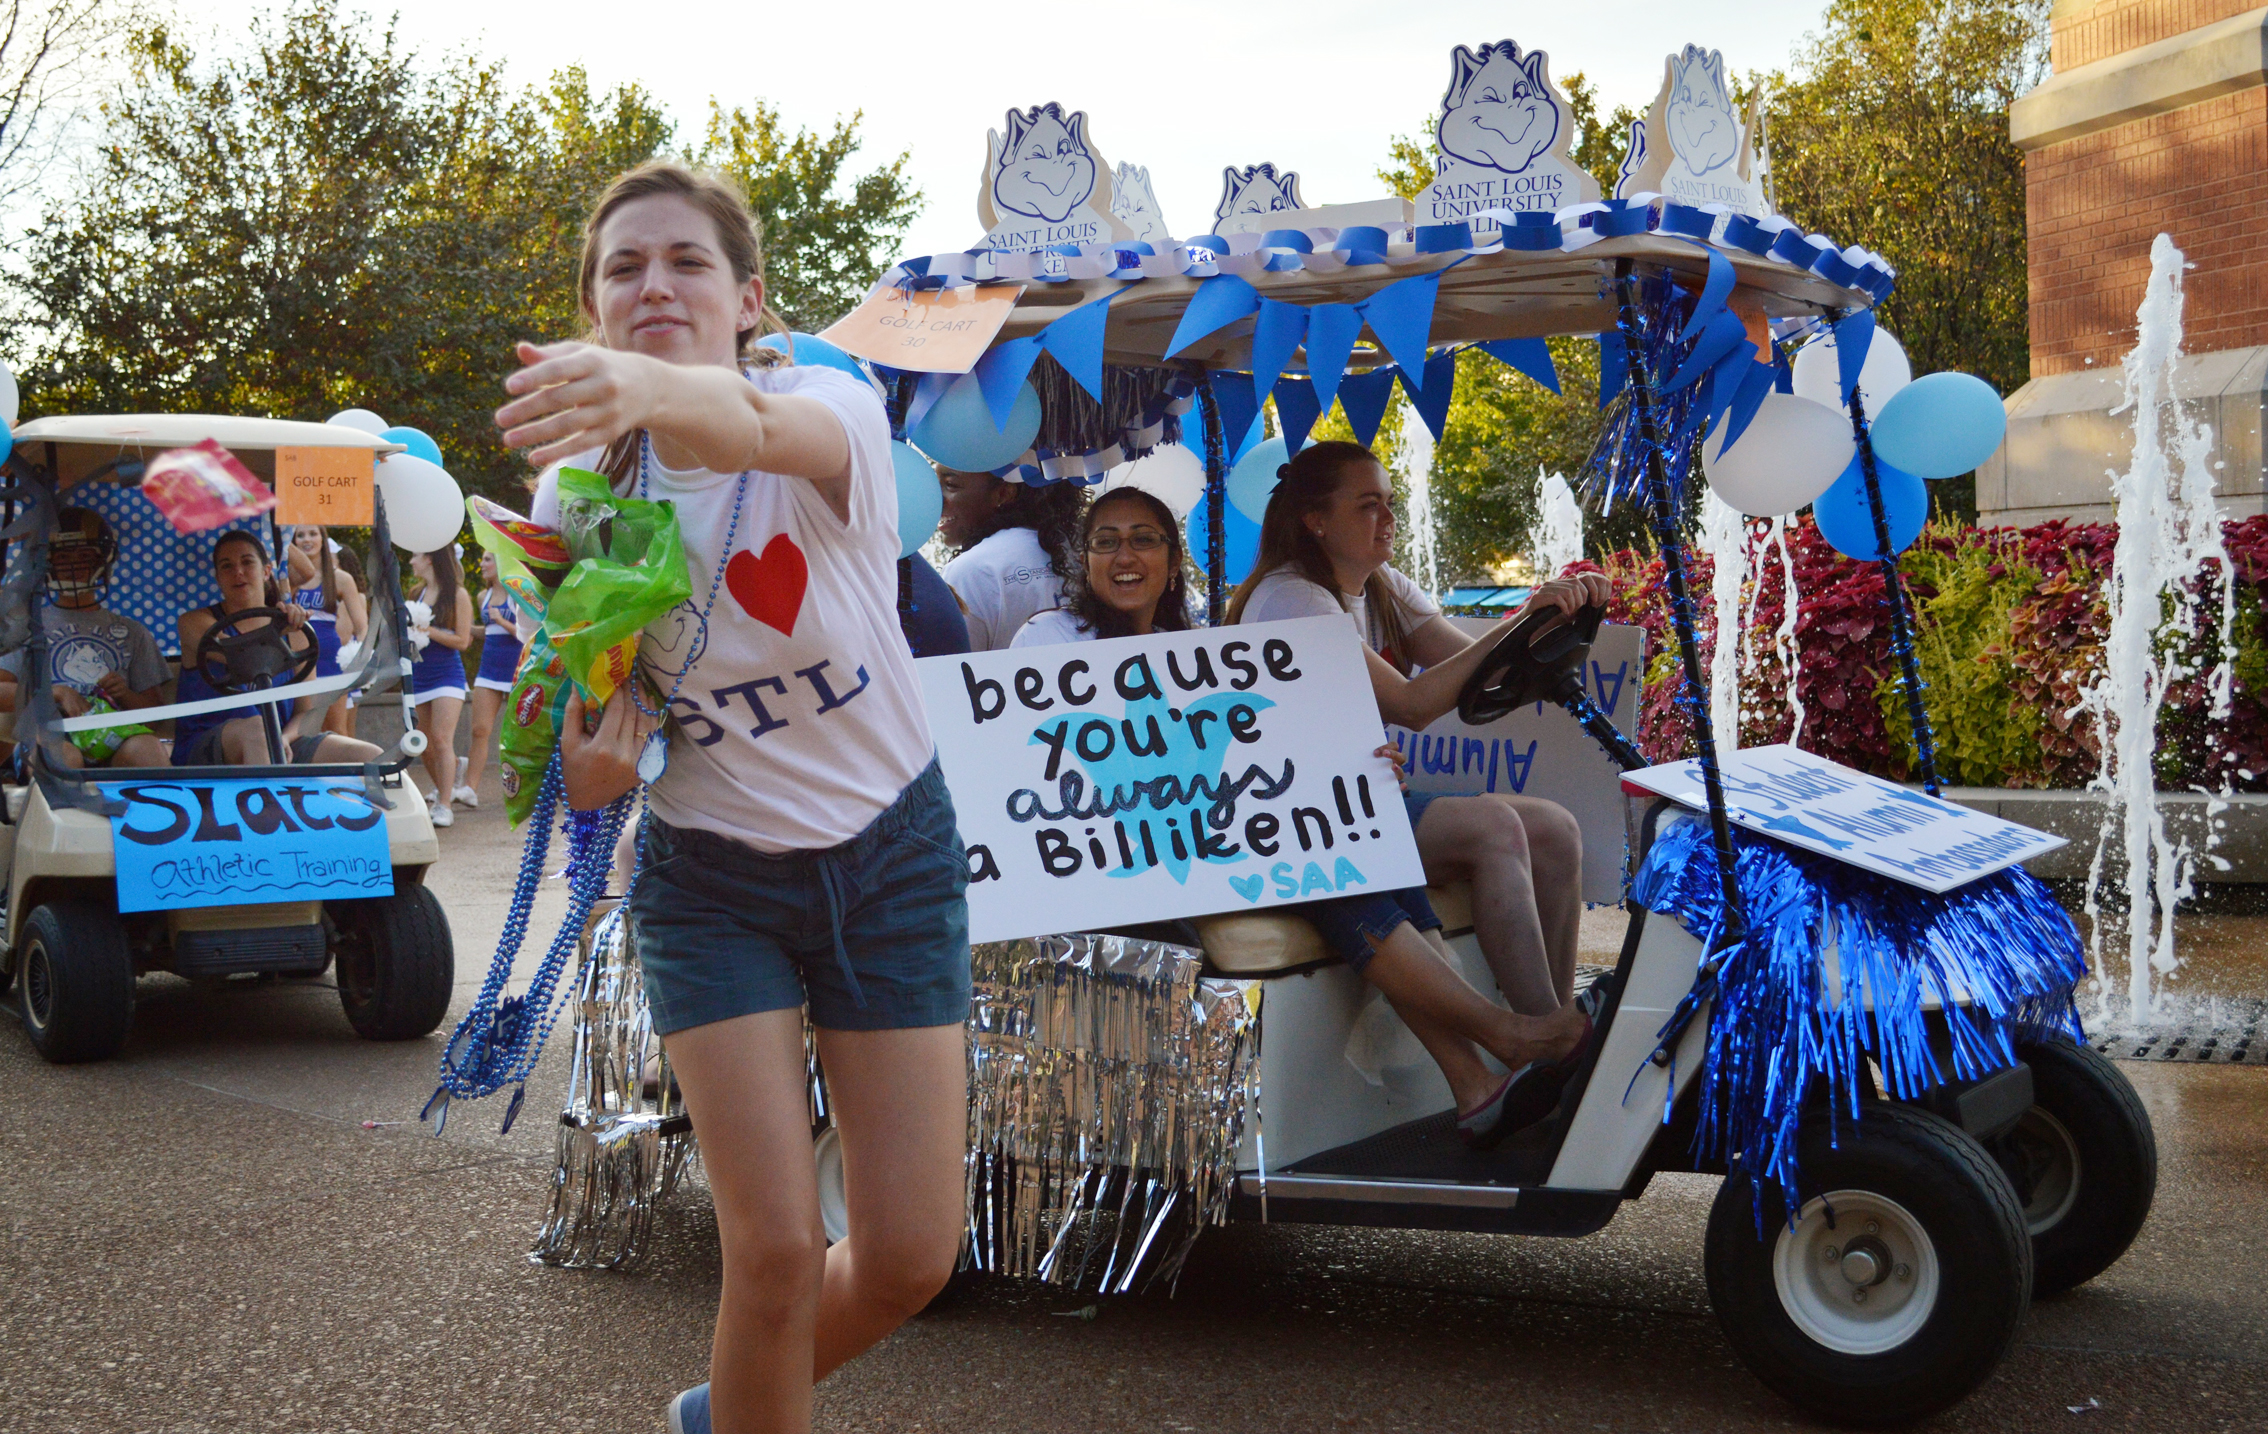 Homecoming: SLU students, alumni, and family participate in the golf-cart parade, one of the many activities held during the weekend. Elizabeth Scofidio  / Contributor